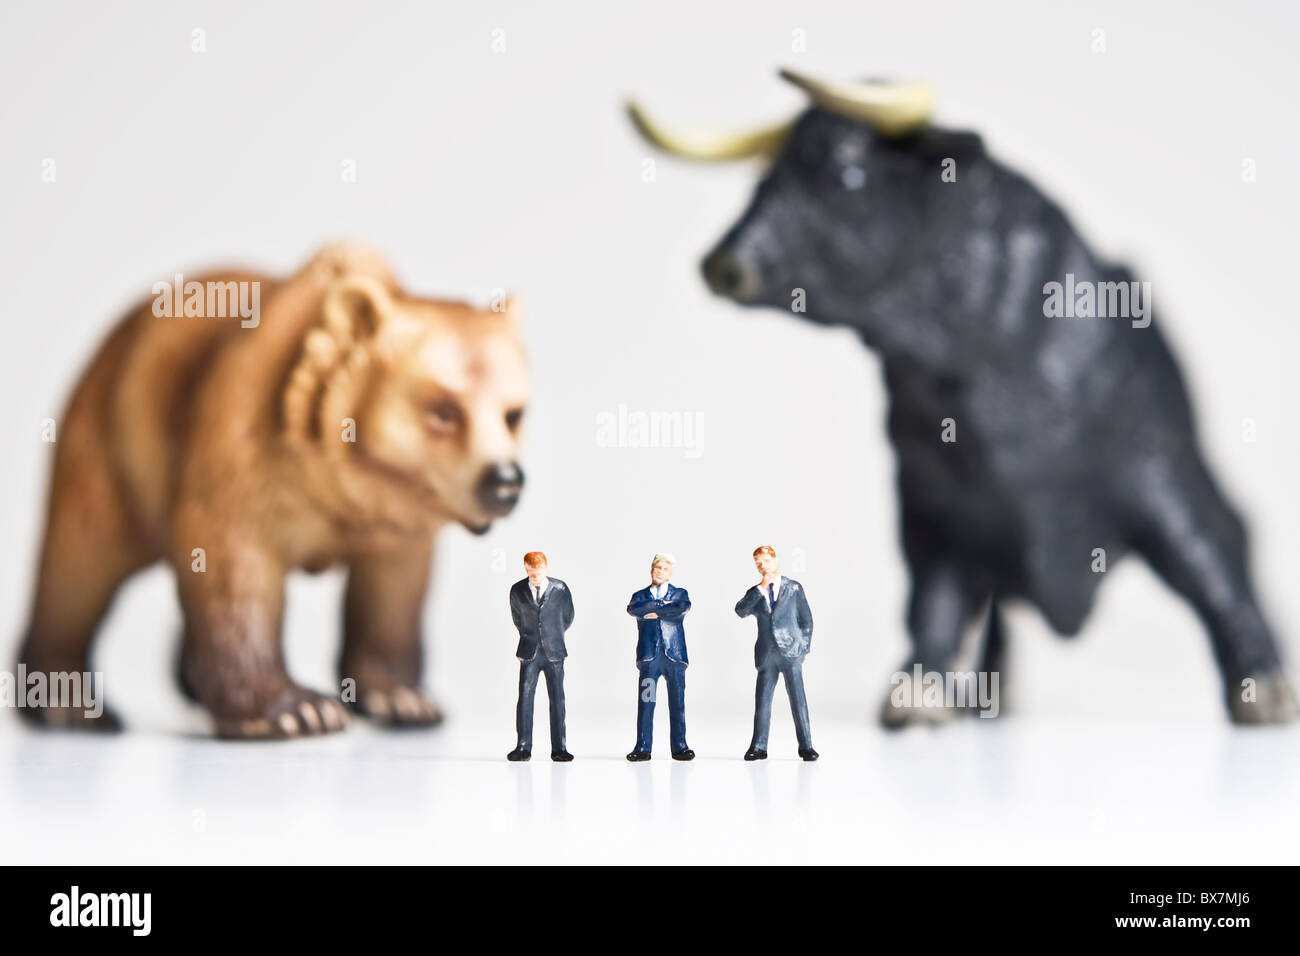 Business figurines placed with bull and bear figurines. Stock Photo